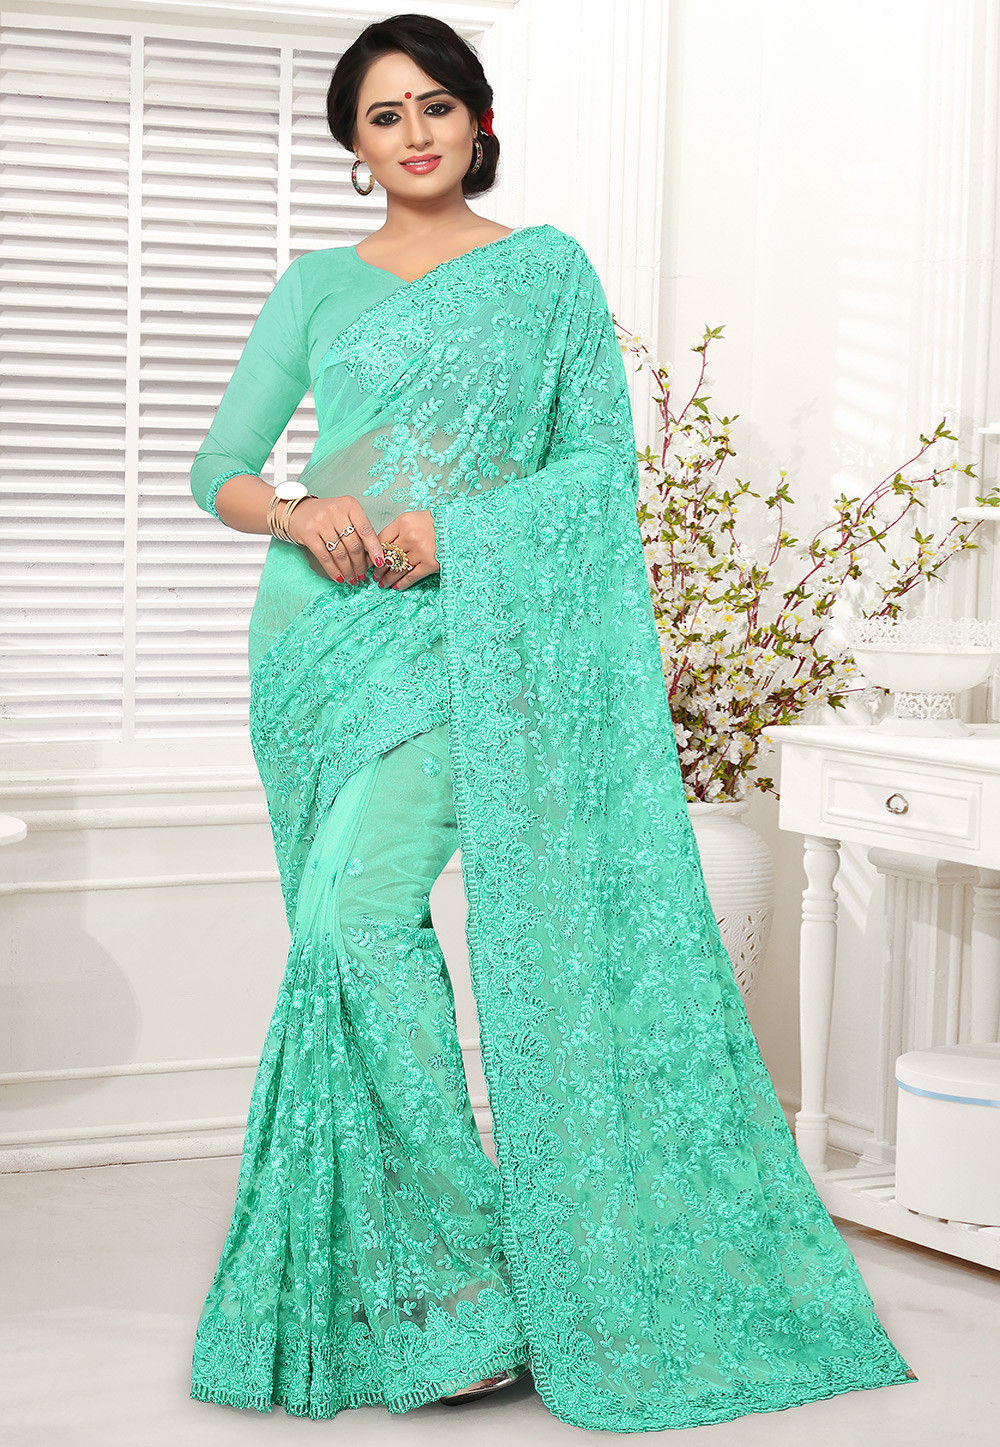 Embroidered Net Lehenga In Peach Lqm76: Embroidered Net Saree In Turquoise : SCBA54